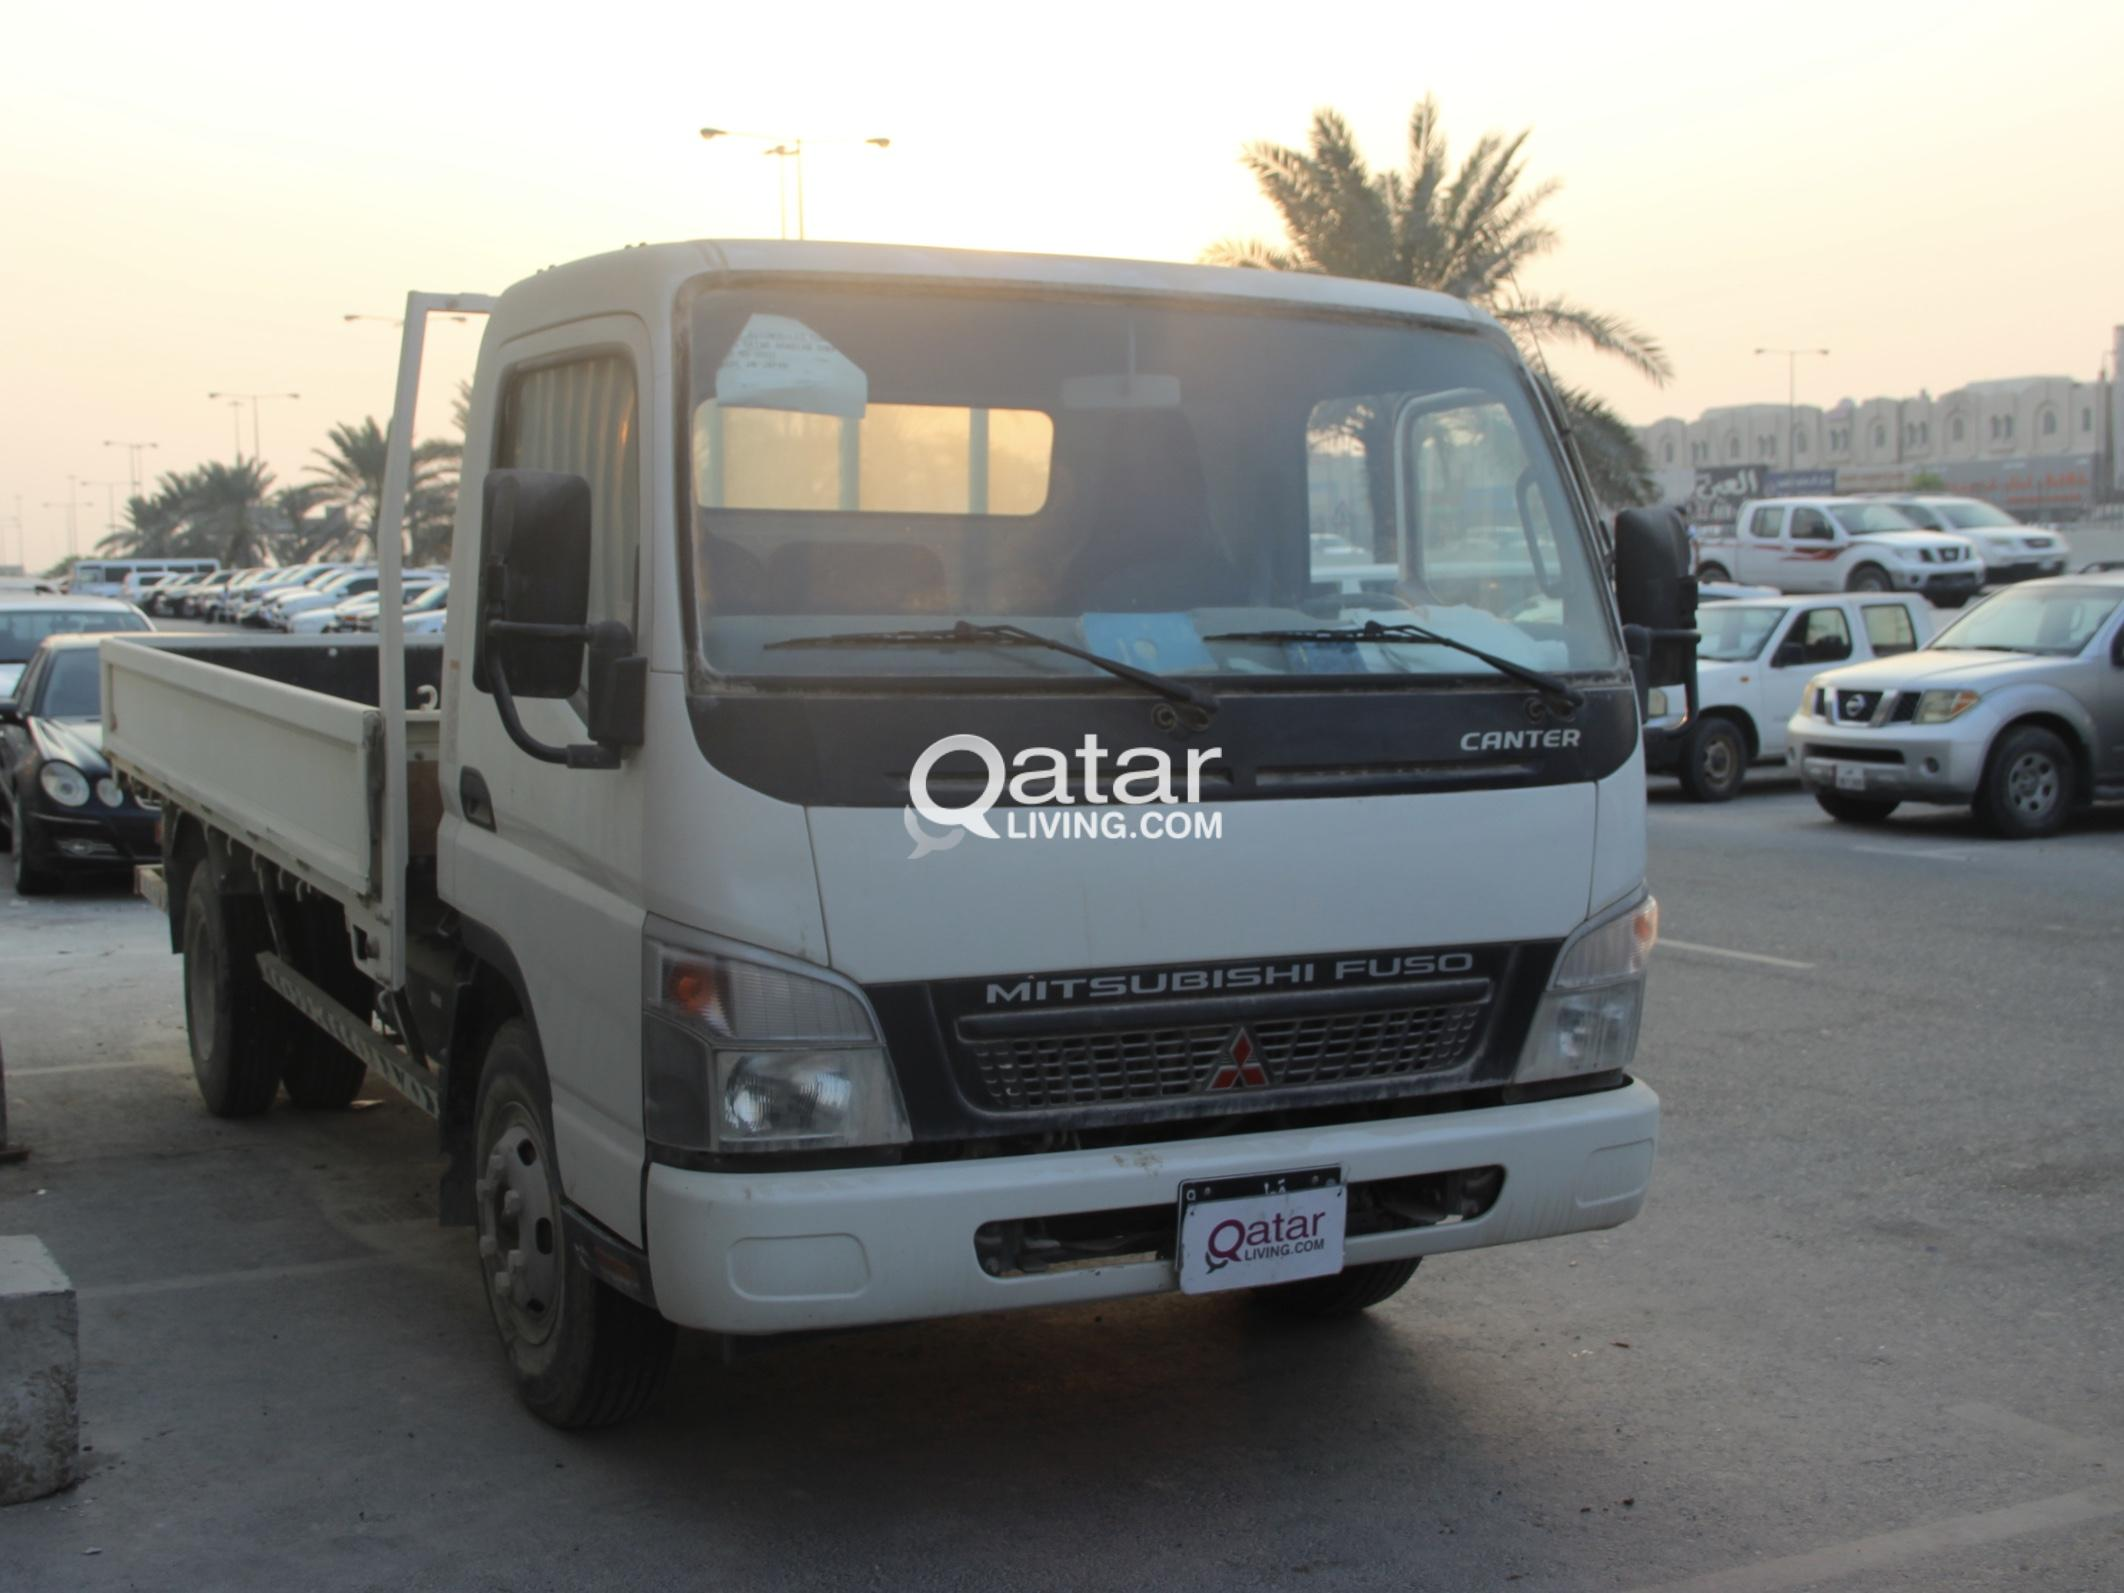 Mitsubishi Fuso Canter 2015 Qatar Living Head Lamp Title